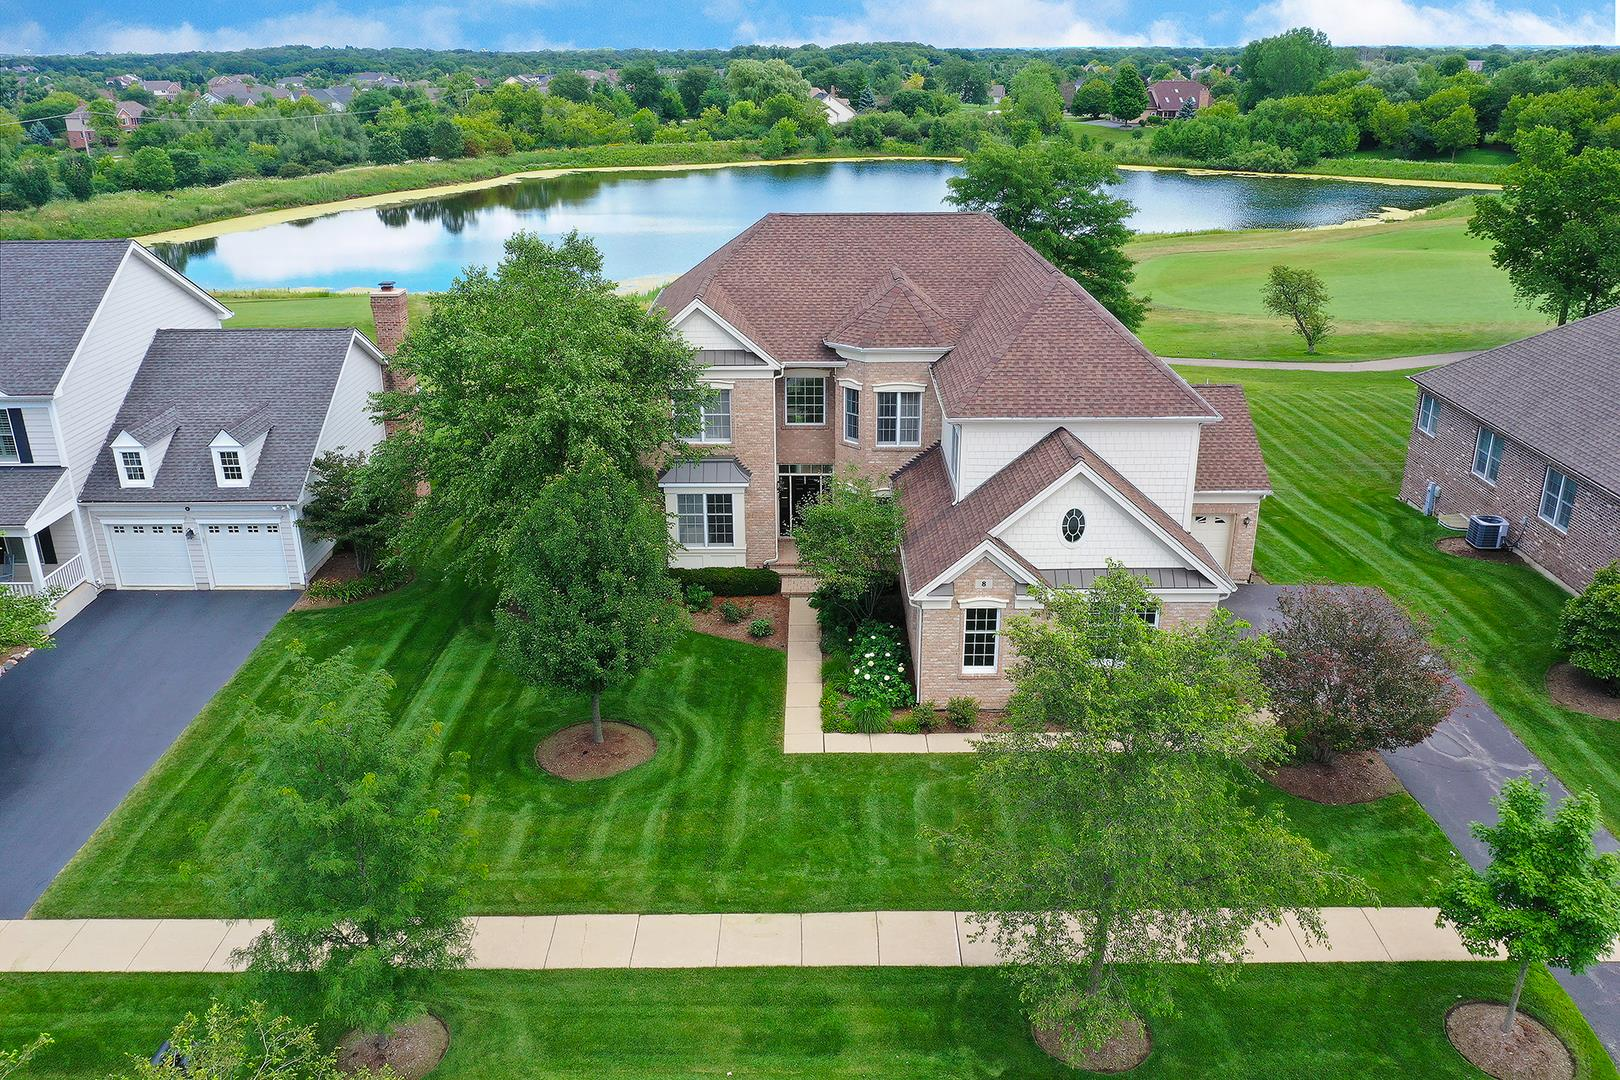 8 Tournament Drive S, Hawthorn Woods, IL 60047 - #: 10808664